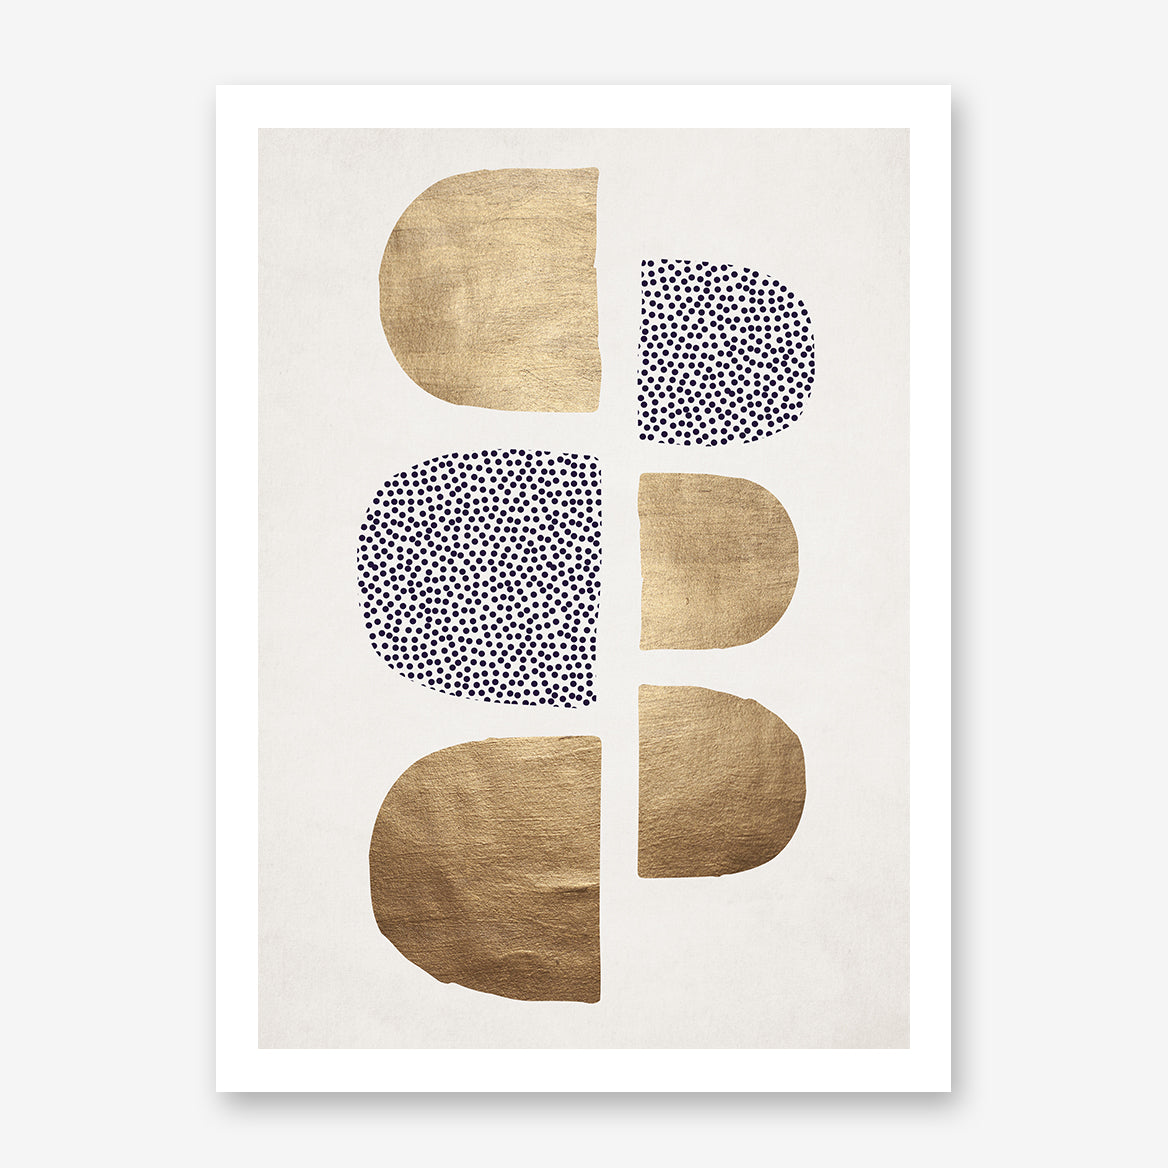 Abstract poster print by Kubistika, with textured gold and purple dots shapes, on light grey background.